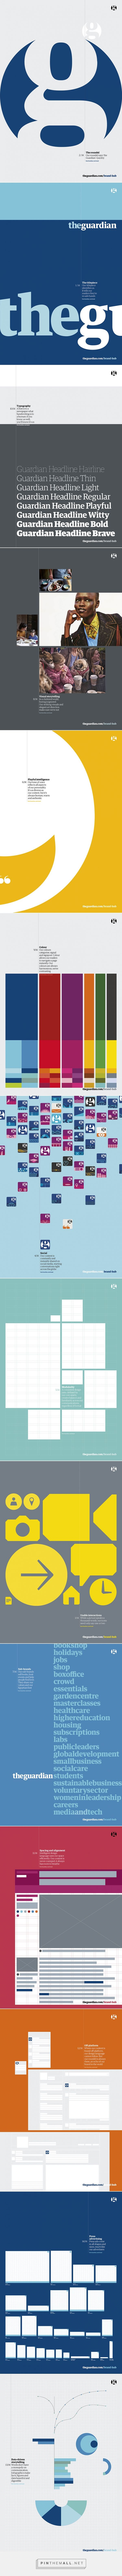 It's Nice That | An insight into The Guardian's newly released brand guidelines - created via https://pinthemall.net